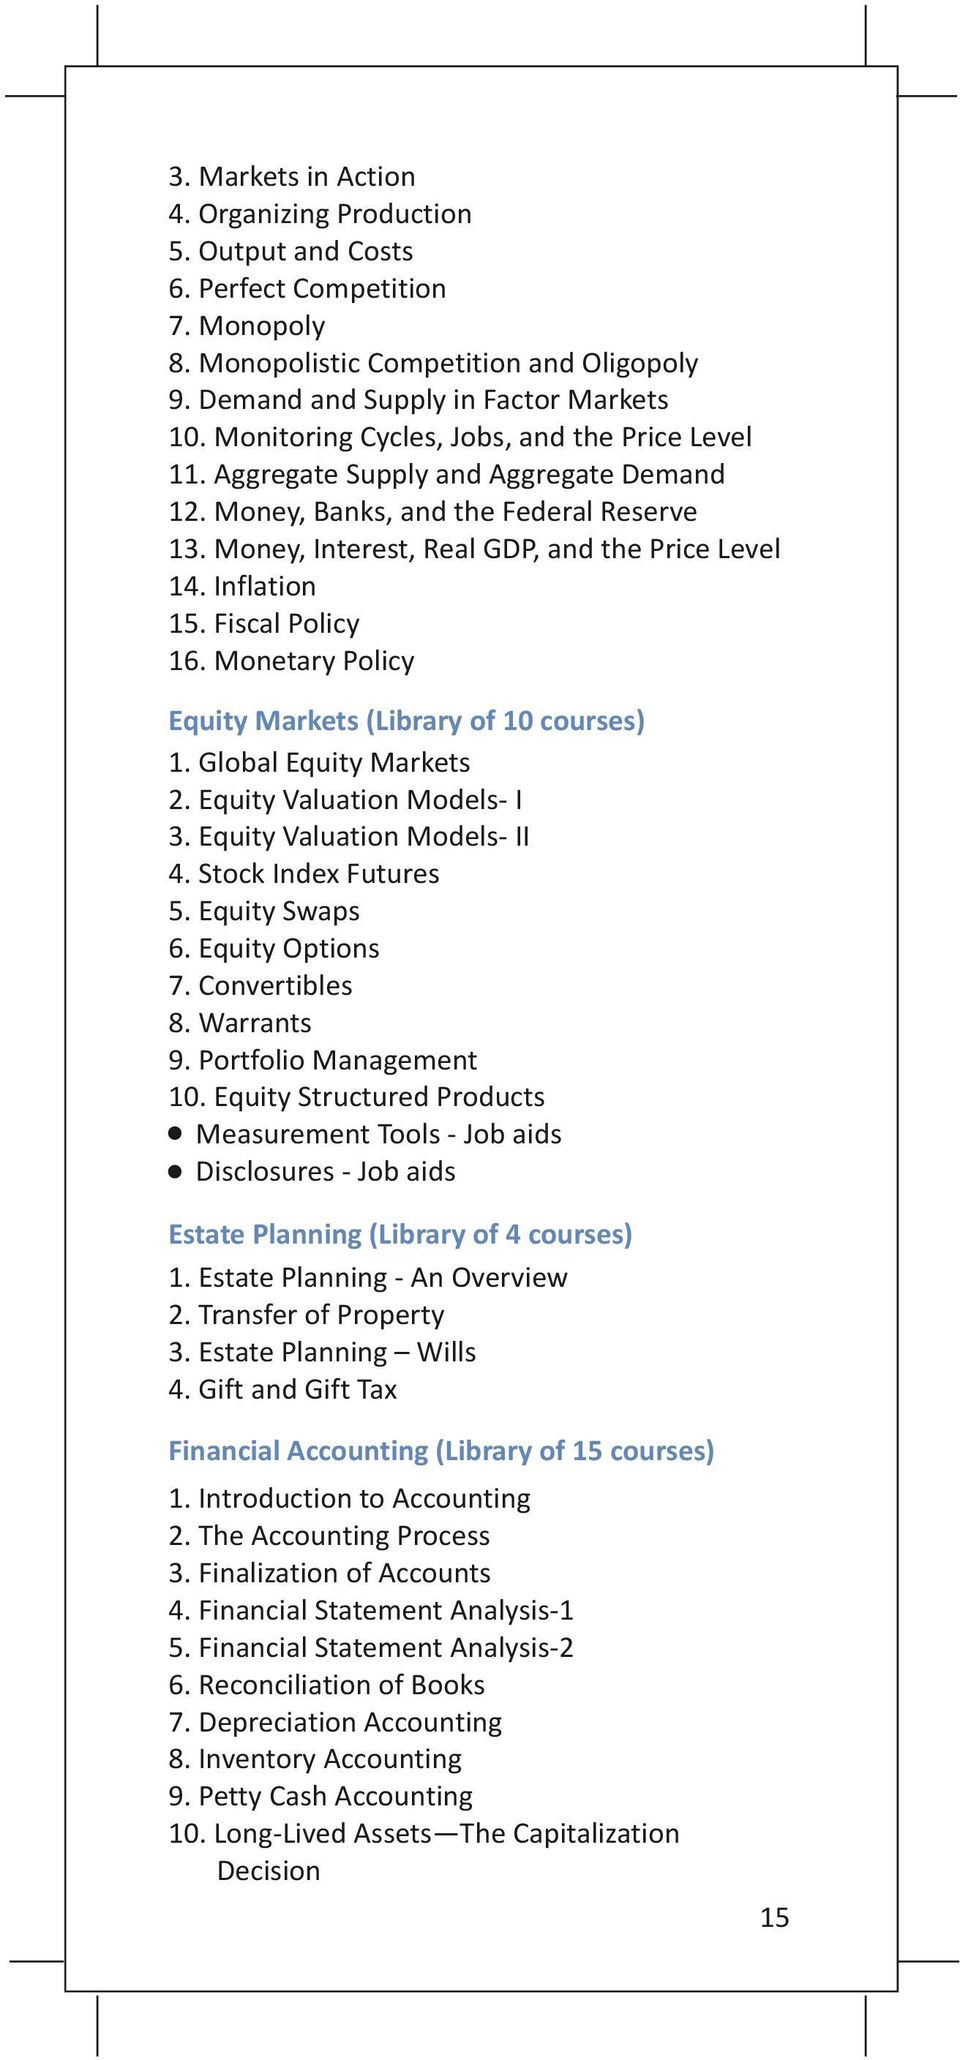 Fiscal Policy 16. Monetary Policy Equity Markets (Library of 10 courses) 1. Global Equity Markets 2. Equity Valuation Models- I 3. Equity Valuation Models- II 4. Stock Index Futures 5. Equity Swaps 6.